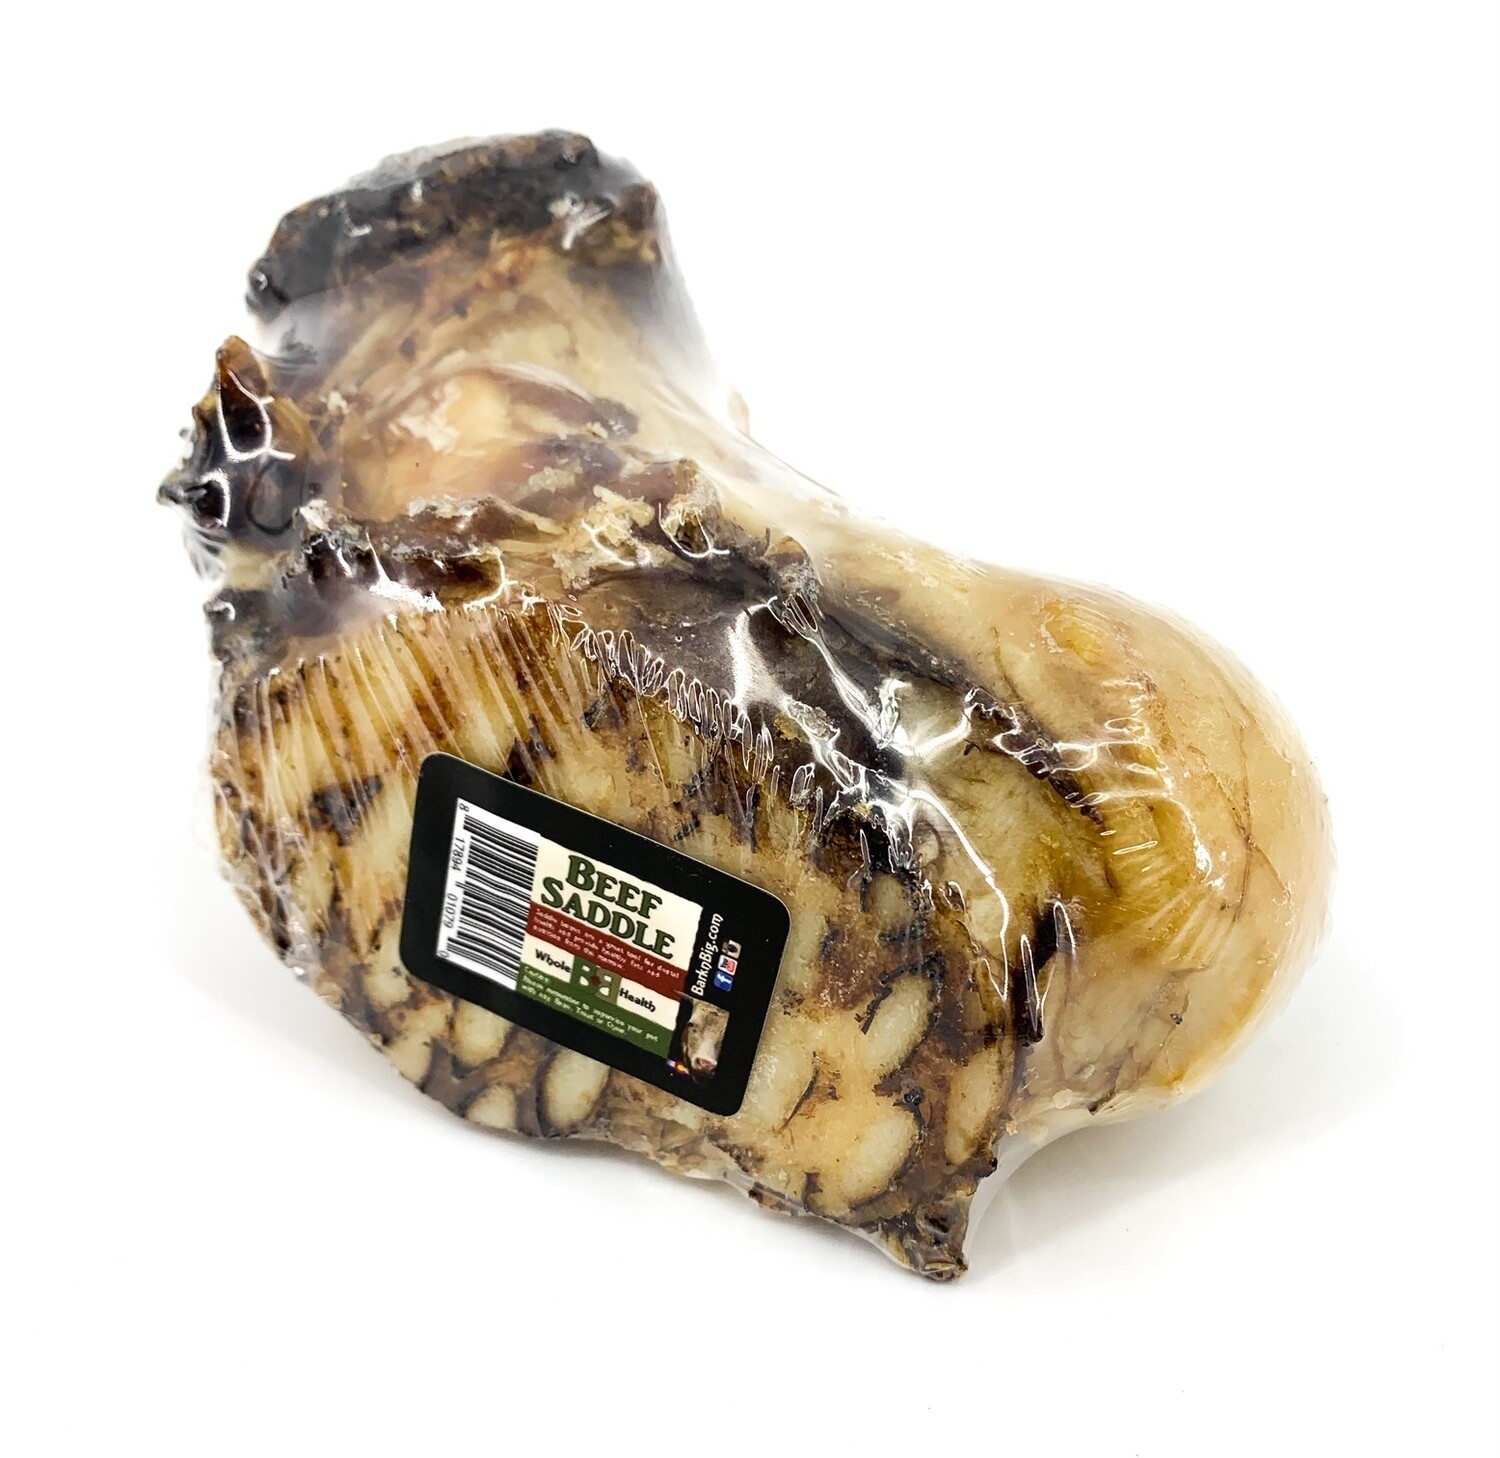 BarknBig Beef Saddle Bone Dog Treats